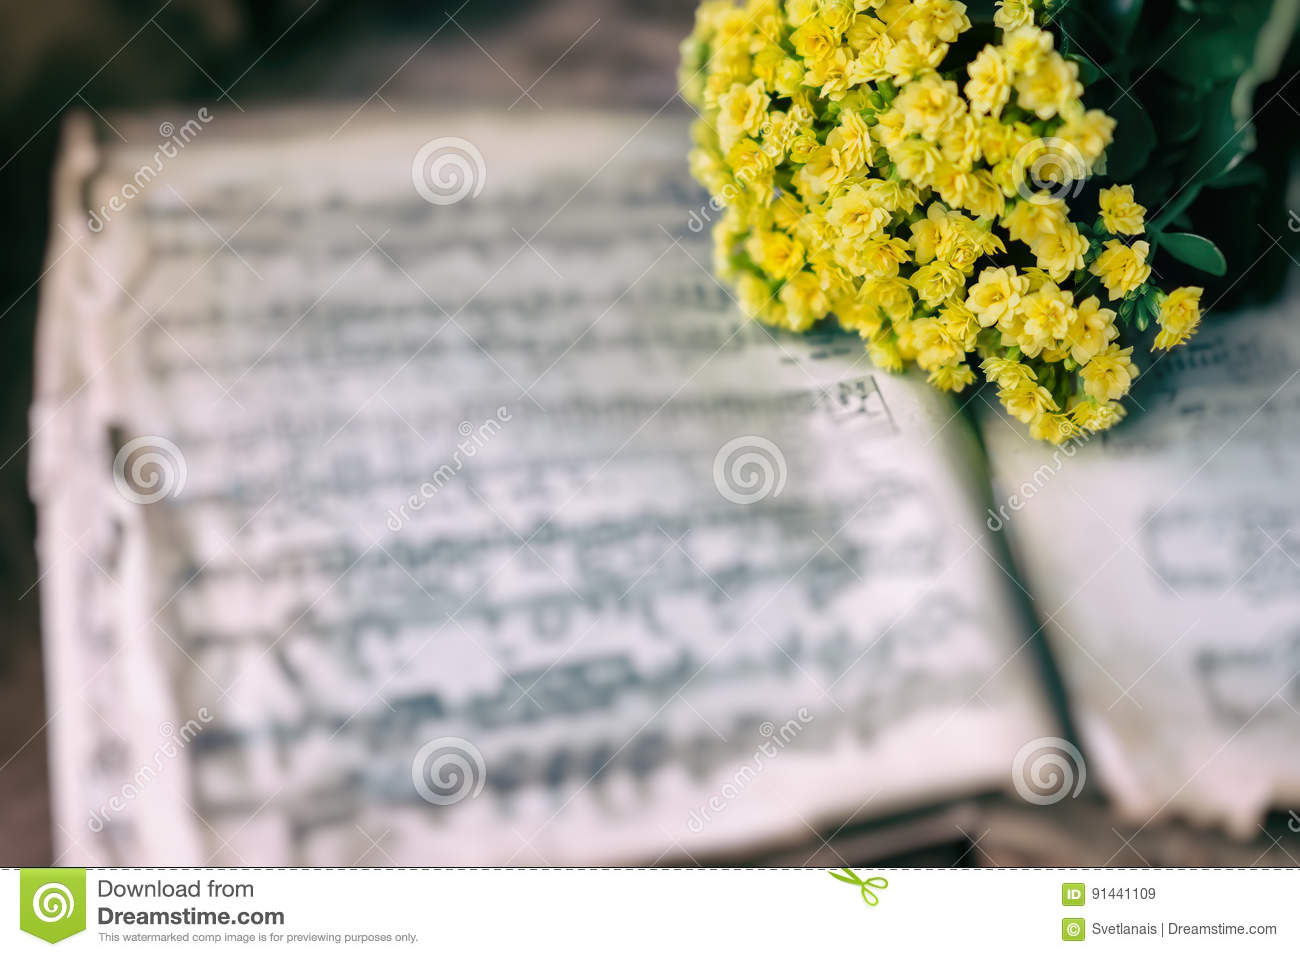 Abstract Vintage Music Background Yellow Flowers On Yellowed Music